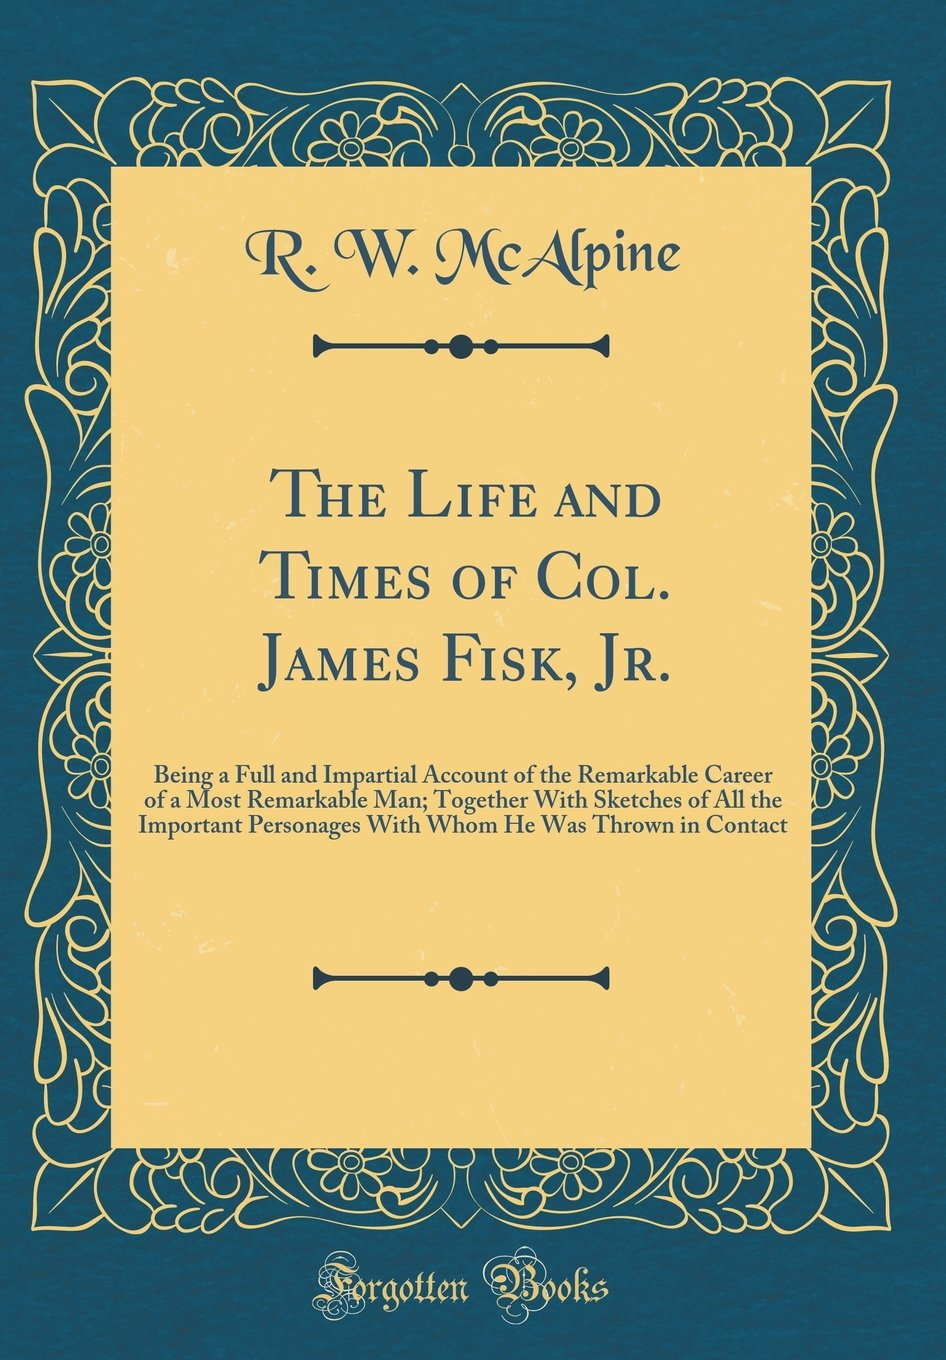 Read Online The Life and Times of Col. James Fisk, Jr.: Being a Full and Impartial Account of the Remarkable Career of a Most Remarkable Man; Together With He Was Thrown in Contact (Classic Reprint) pdf epub